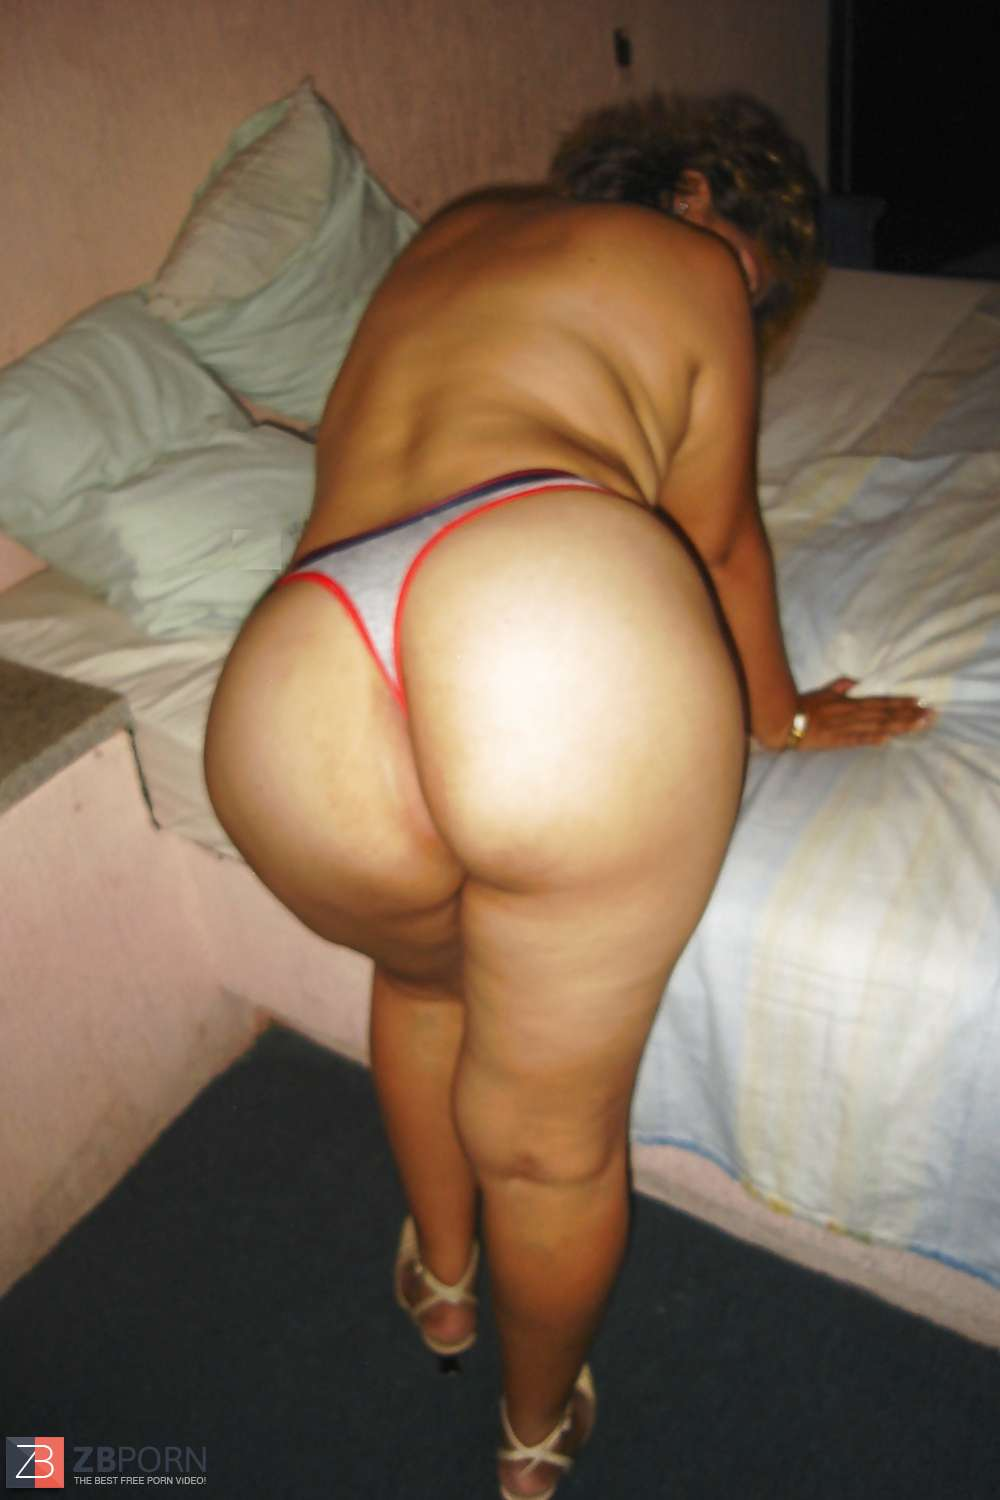 putas y chichonas sexo amature